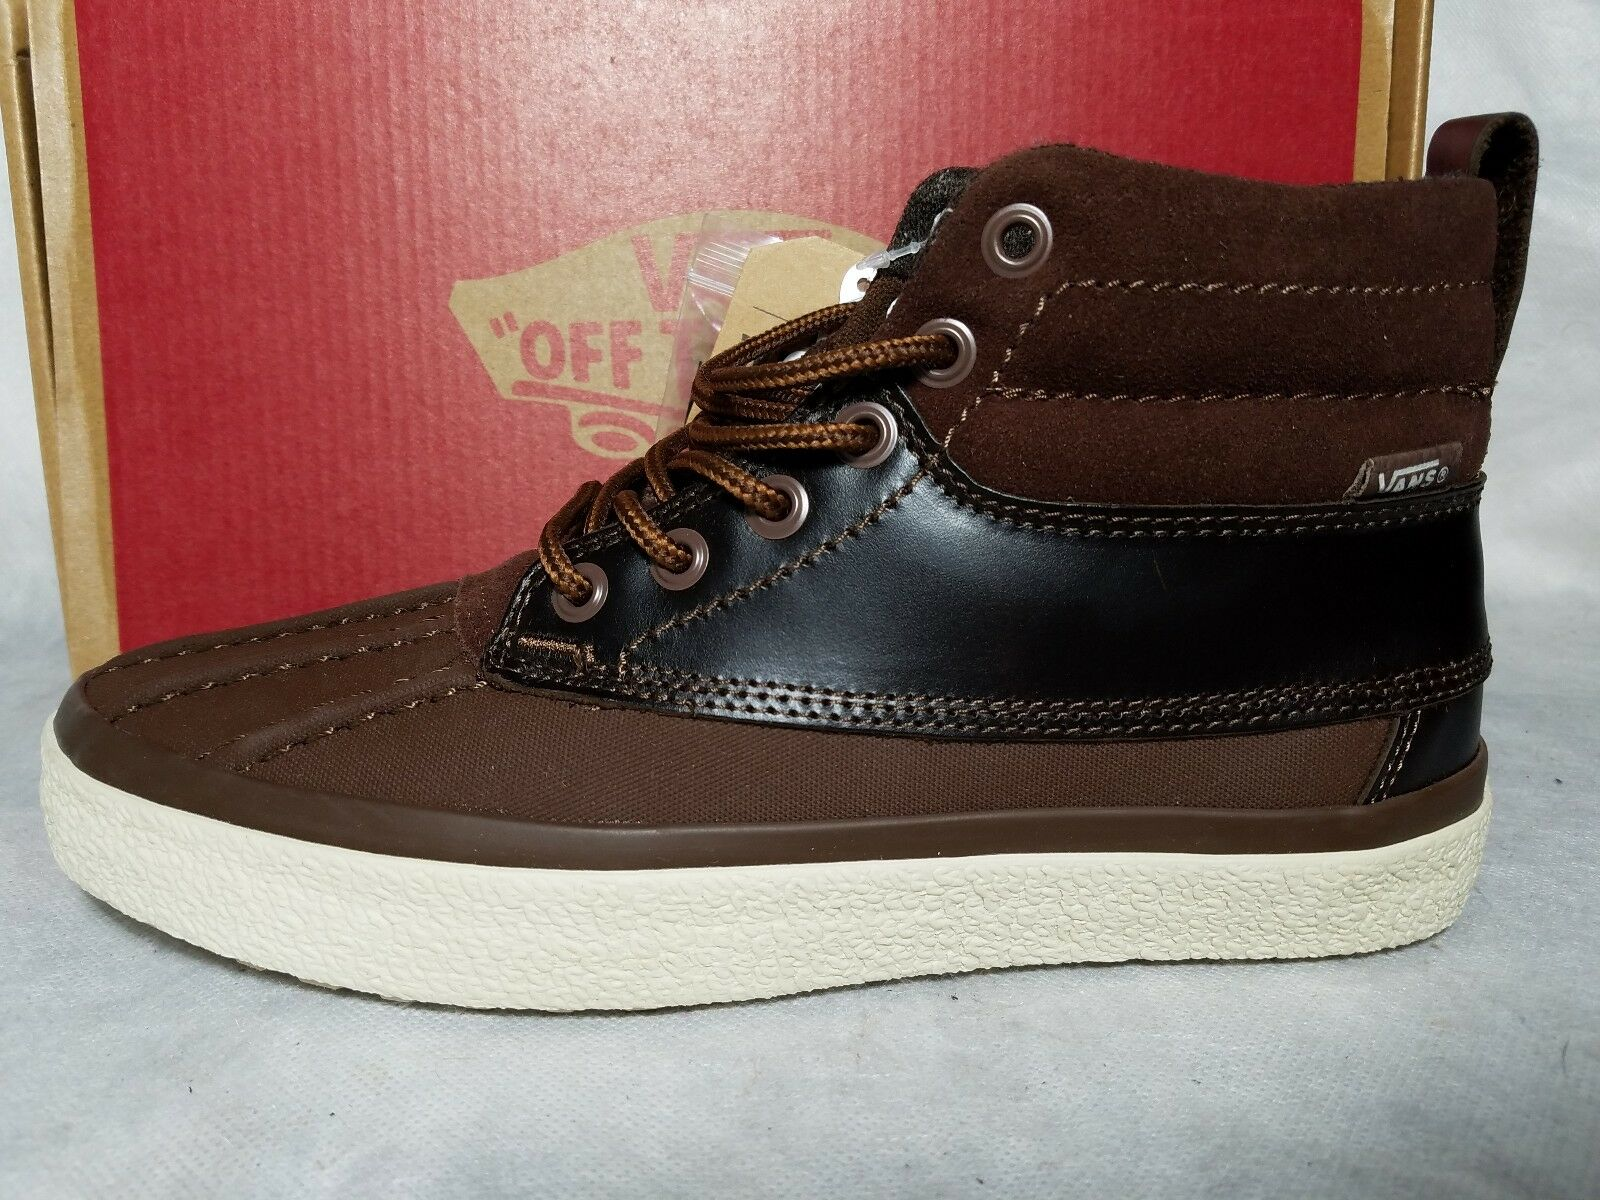 New Vans SK8-Hi Del Pato Hiking MTE Leather Suede Brown Hiking Pato Skate Shoe Men Size 6.5 ba5517